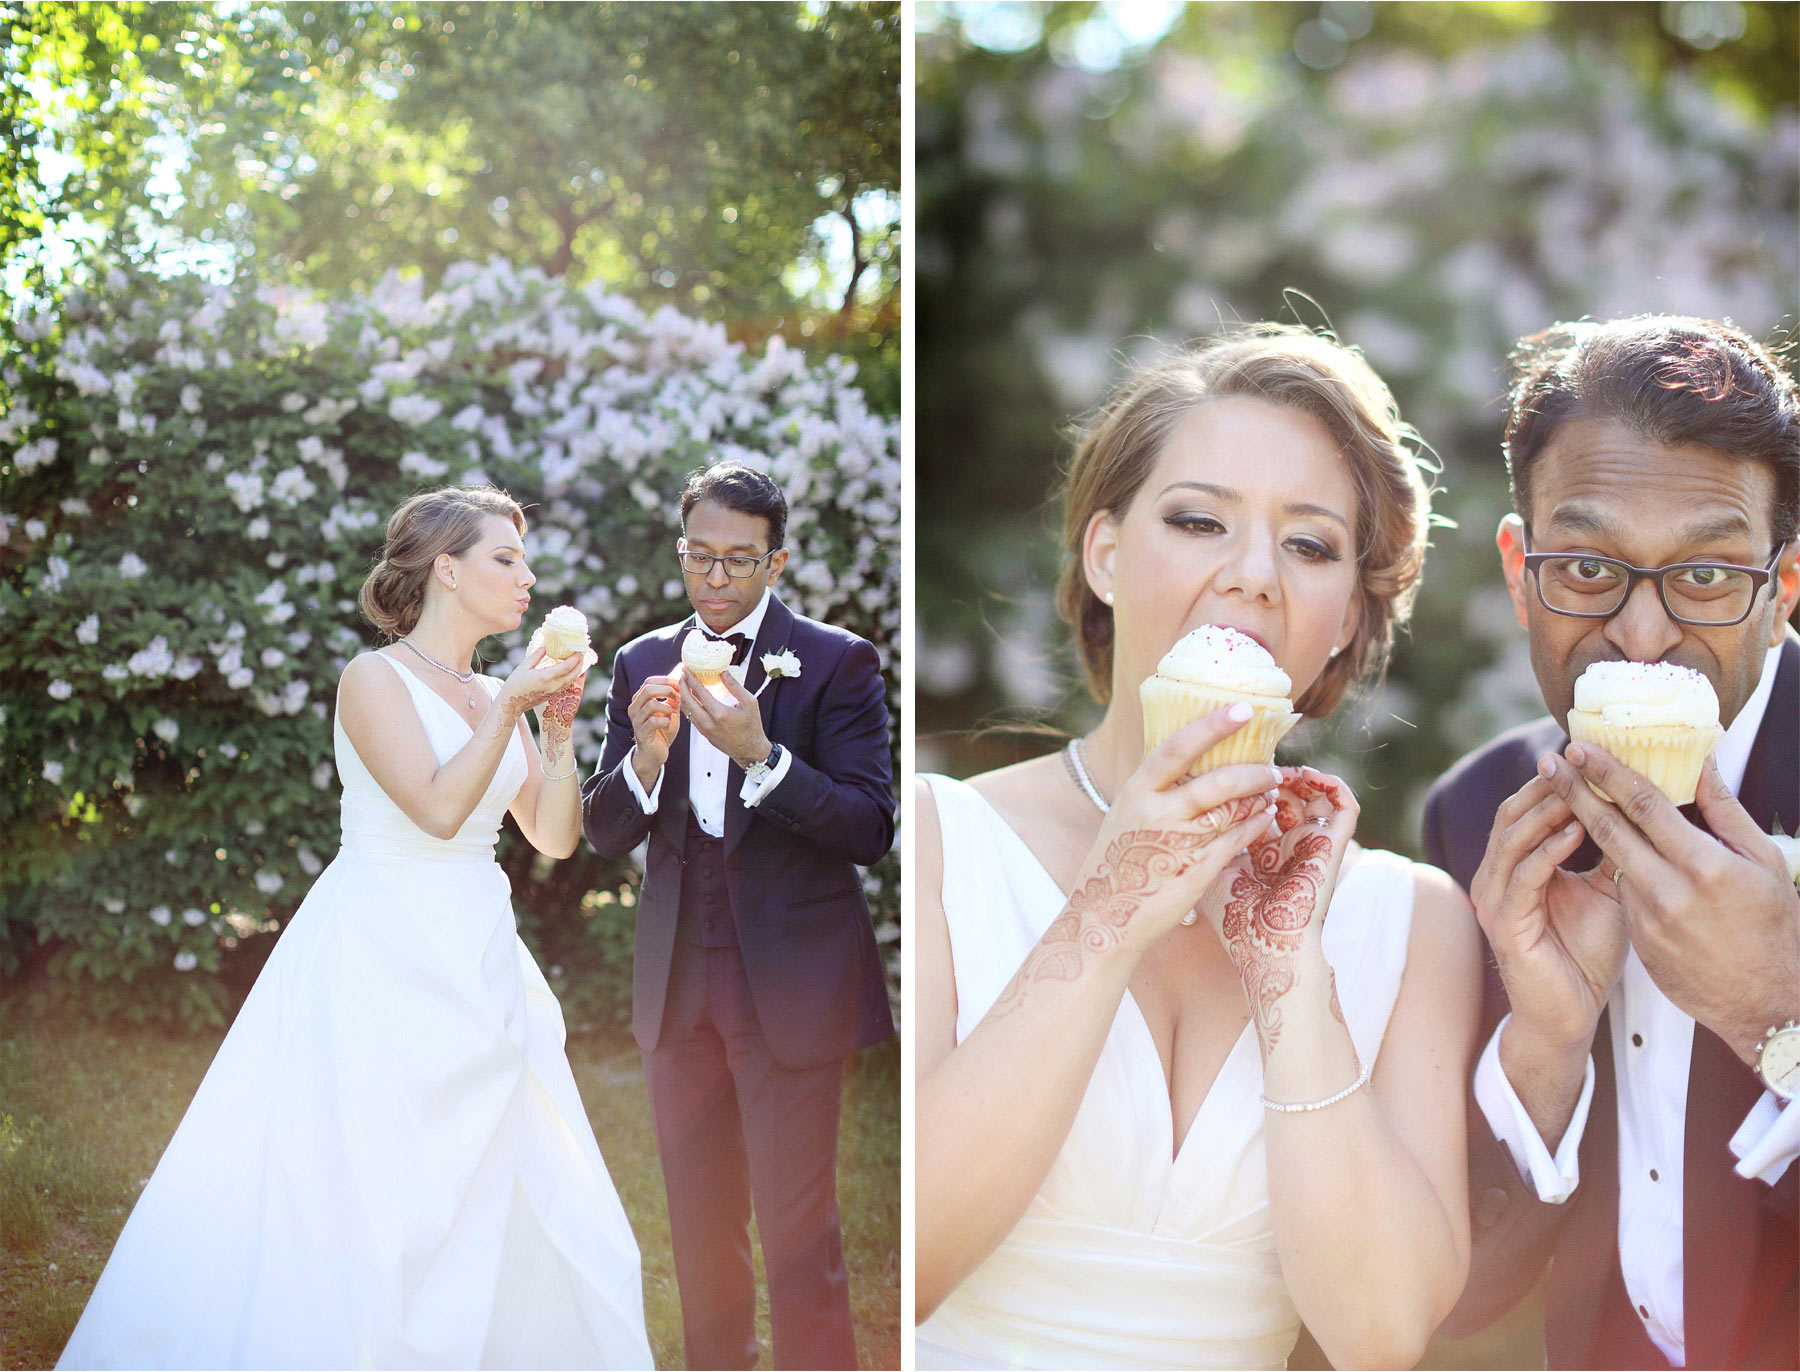 22-Minneapolis-Minnesota-Wedding-Photographer-by-Andrew-Vick-Photography--Spring-Bride-Groom-Henna-Cupcakes-Rachel-and-Venu.jpg